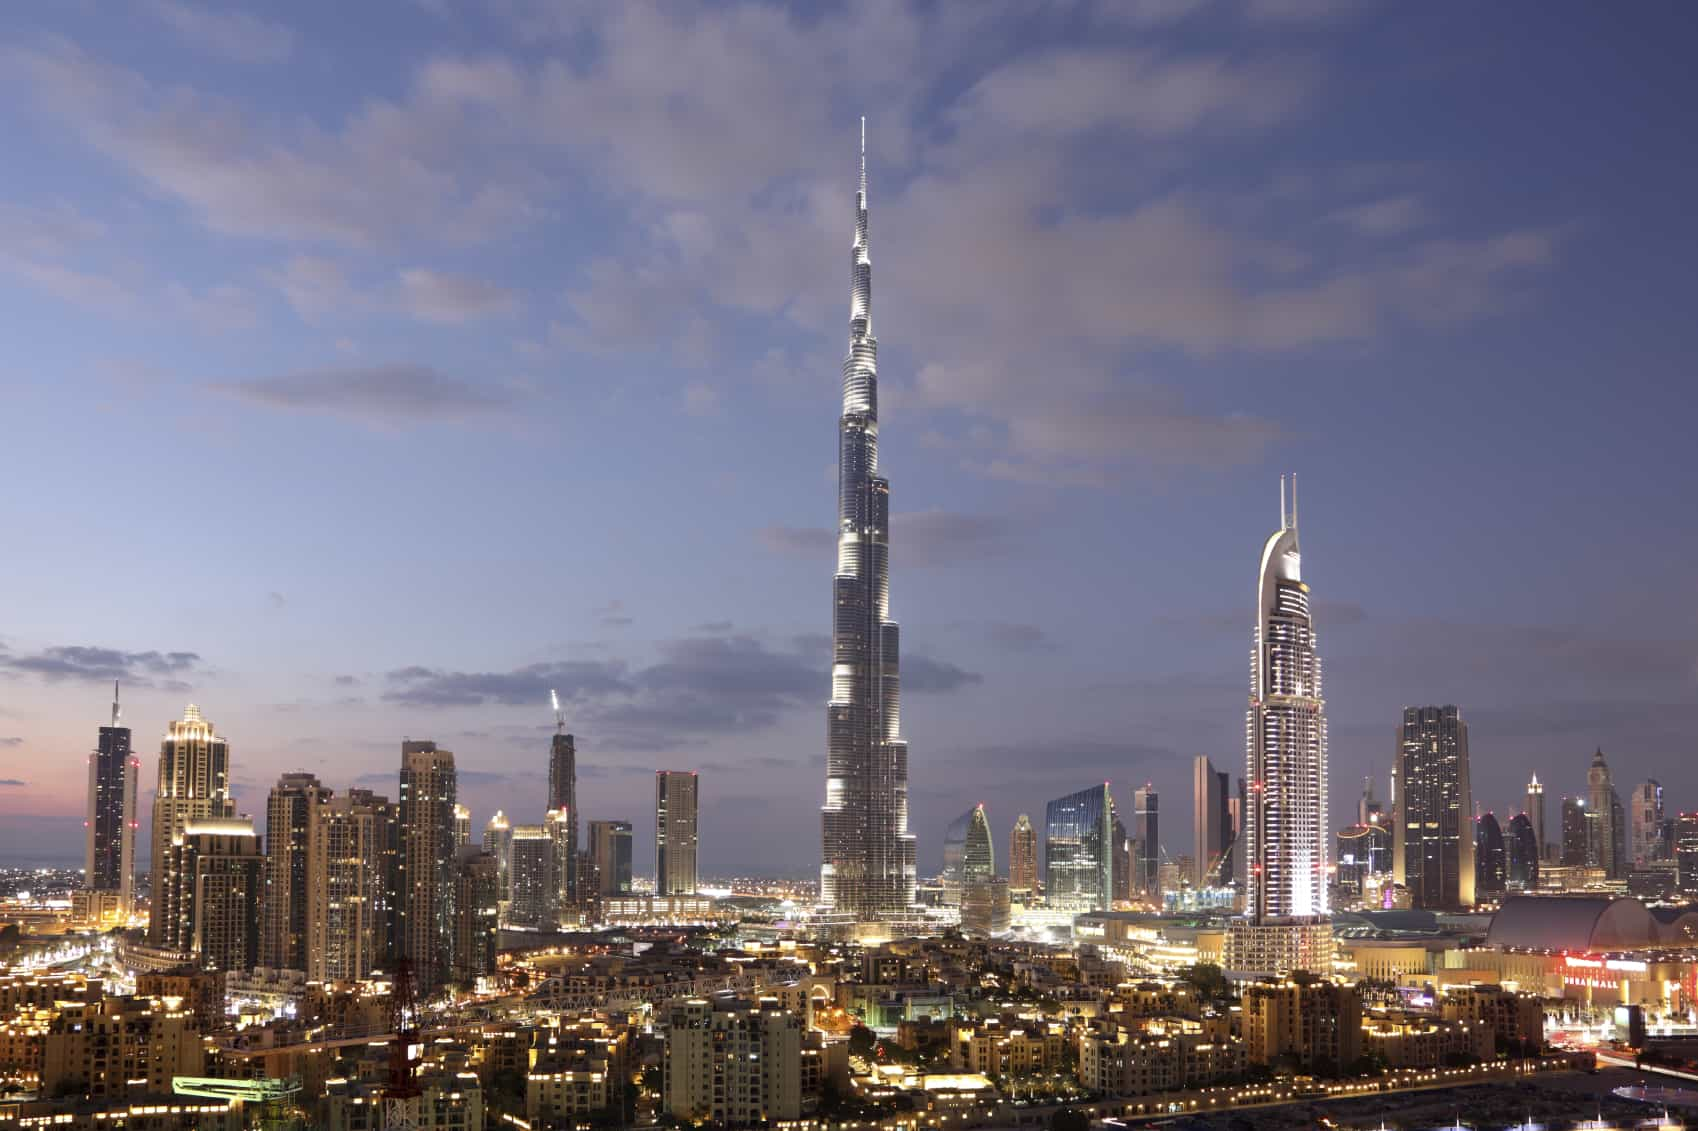 Dubai Downtown at dusk iStock 000033457026 Medium - The Impact of Elevators on Structural Design and Architecture